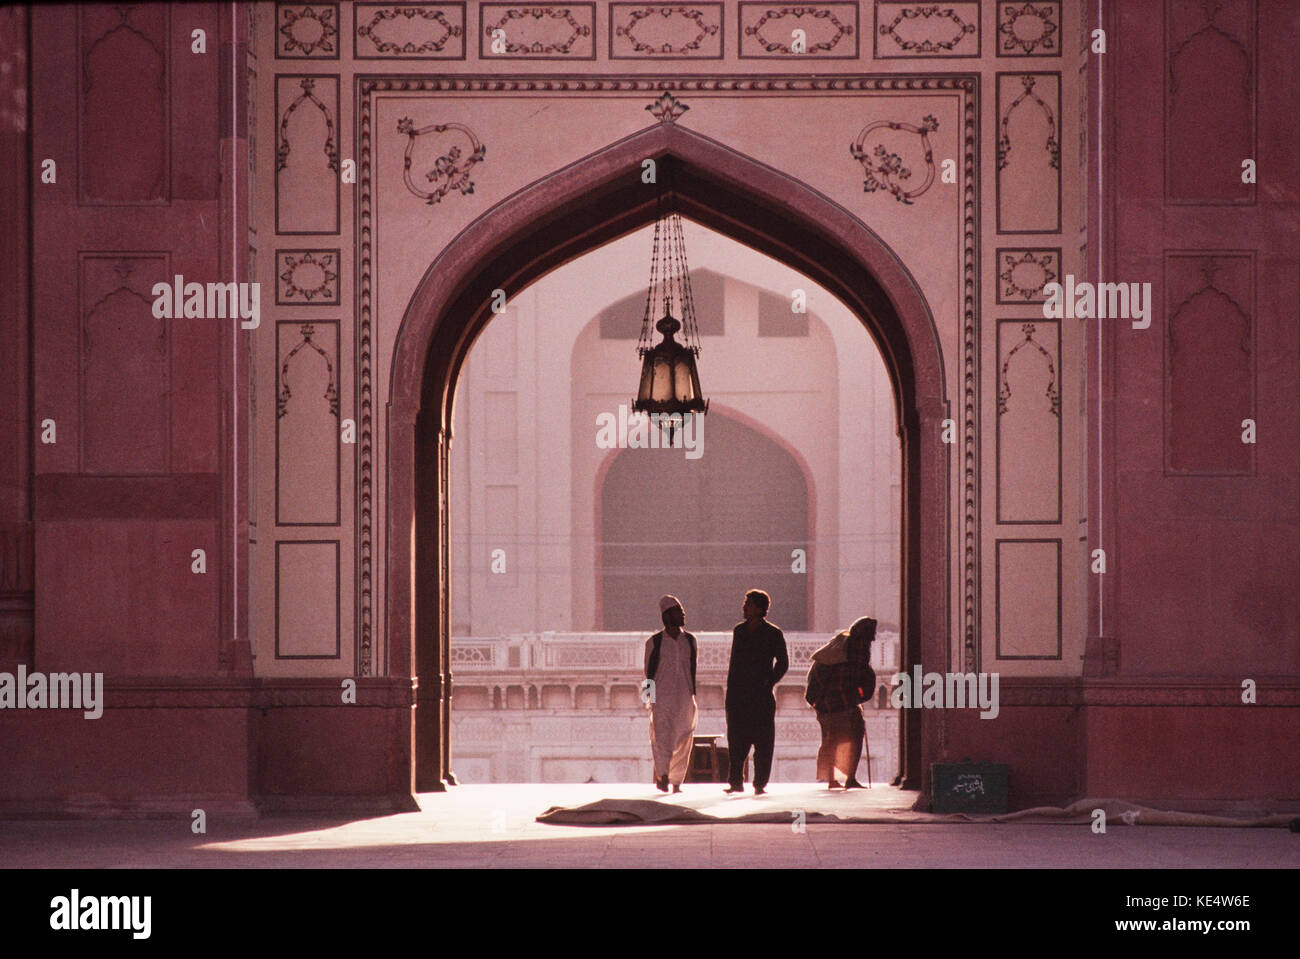 People coming through the main entrance to the Badshahi Mosque, Lahore, Pakistan. - Stock Image